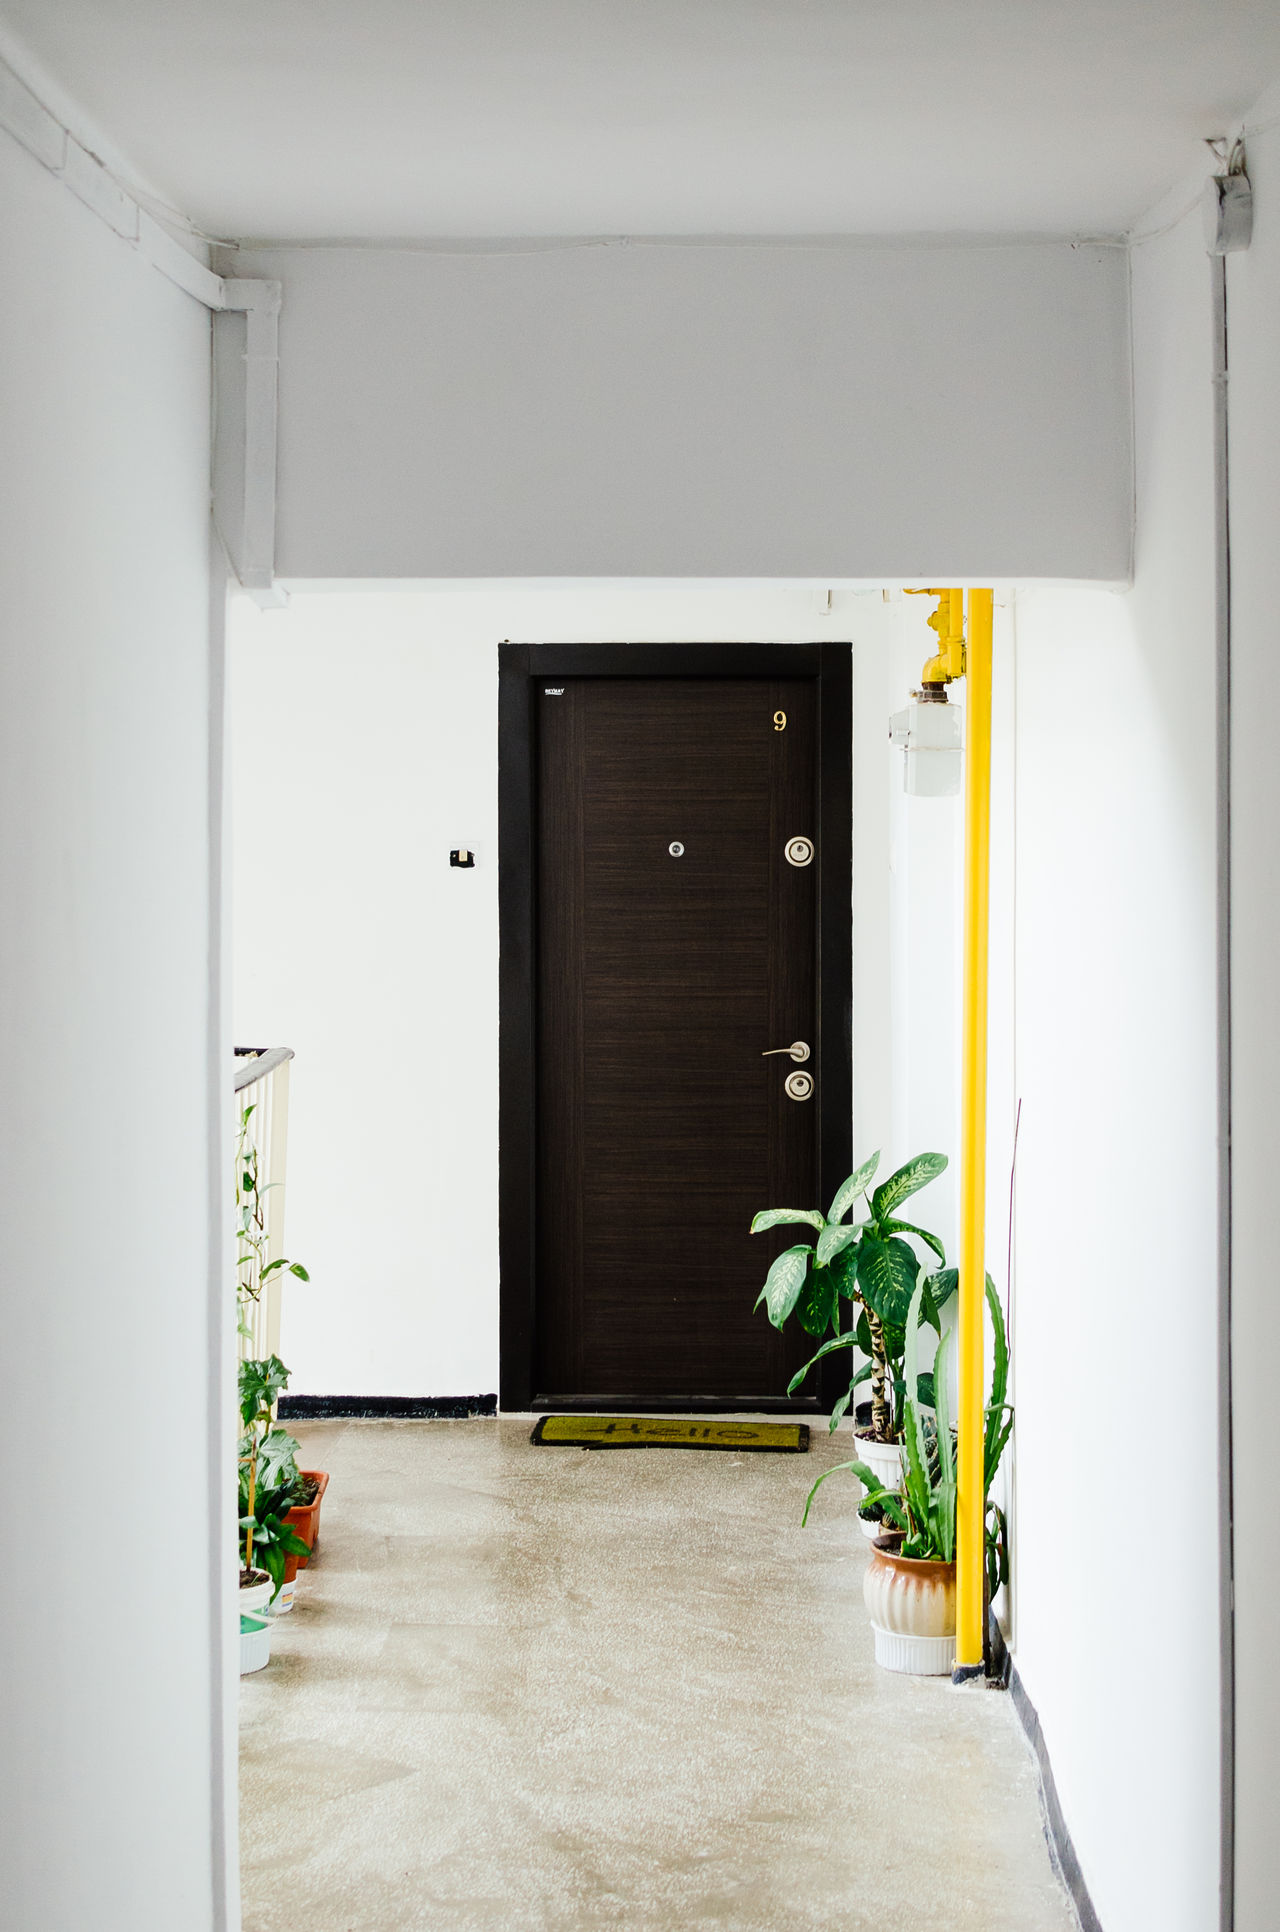 Welcome home Apartment Architecture Built Structure Day Door Flower Indoors  Leaf No People Outdoors Plant Plants Shutter Sliding Door Whitewashed Window